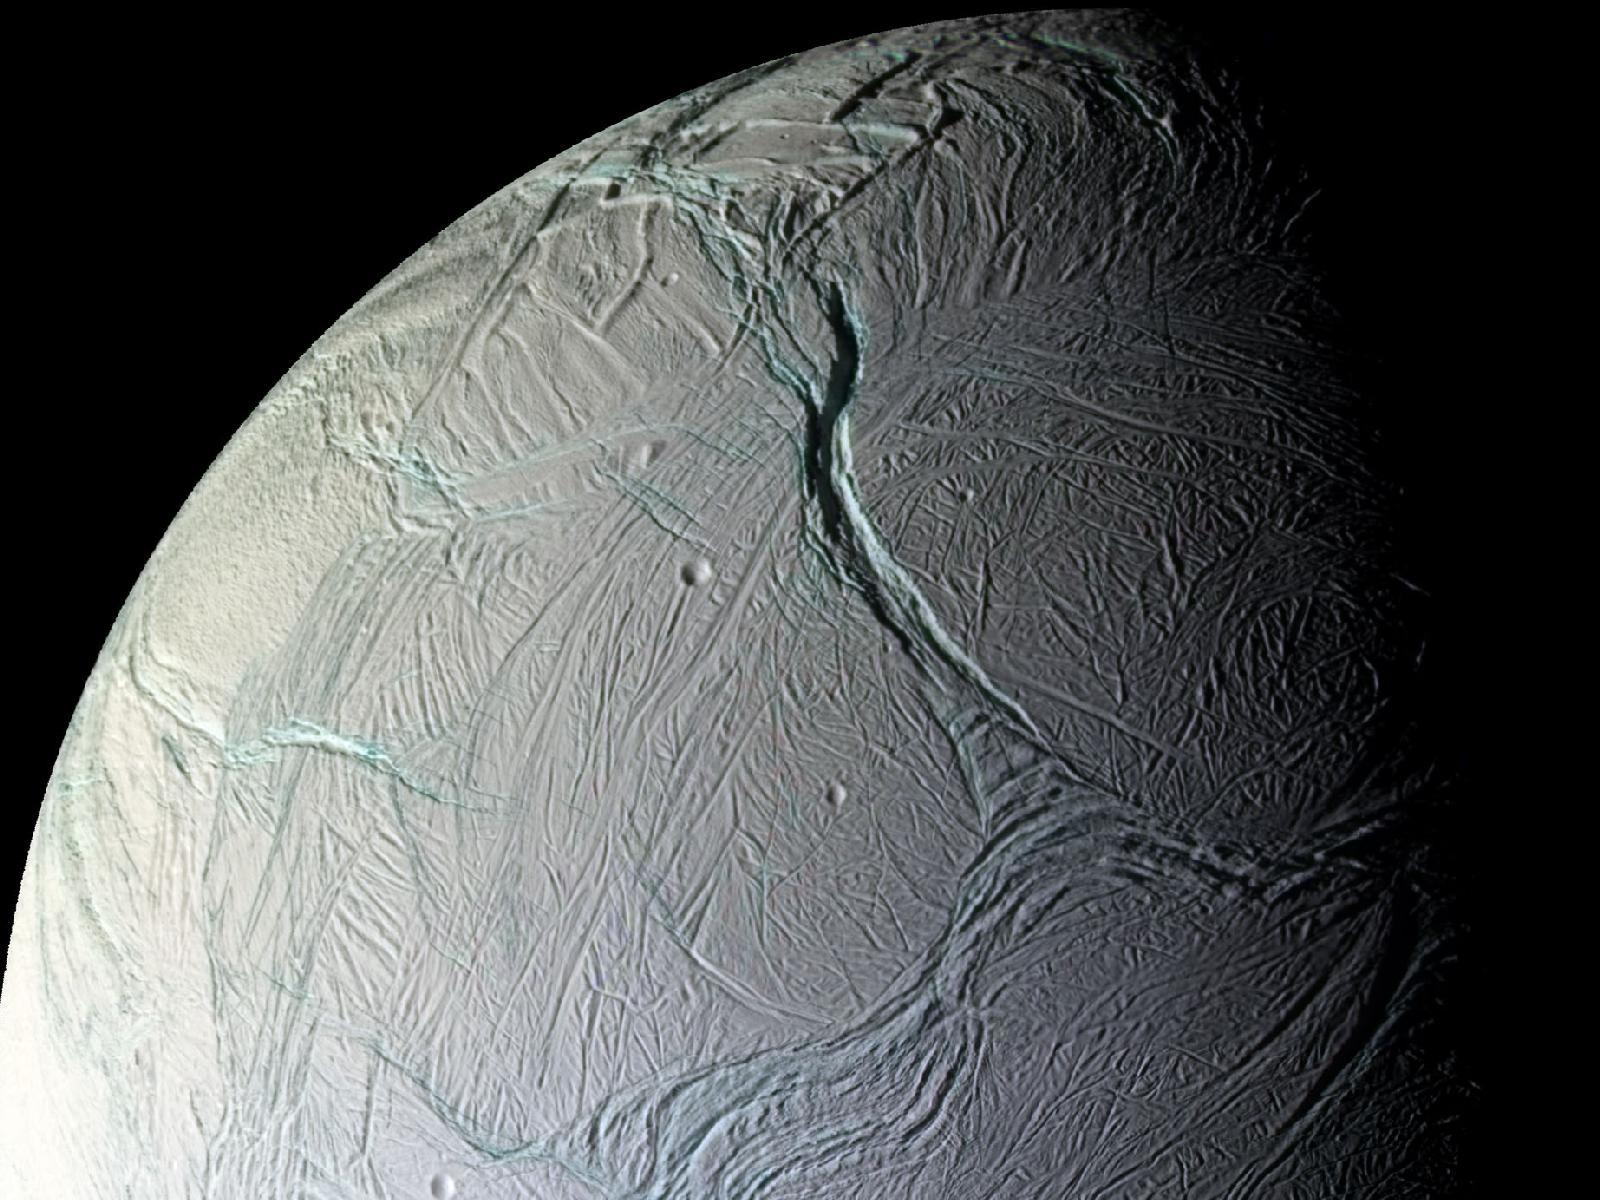 Enceladus HD Wallpaper